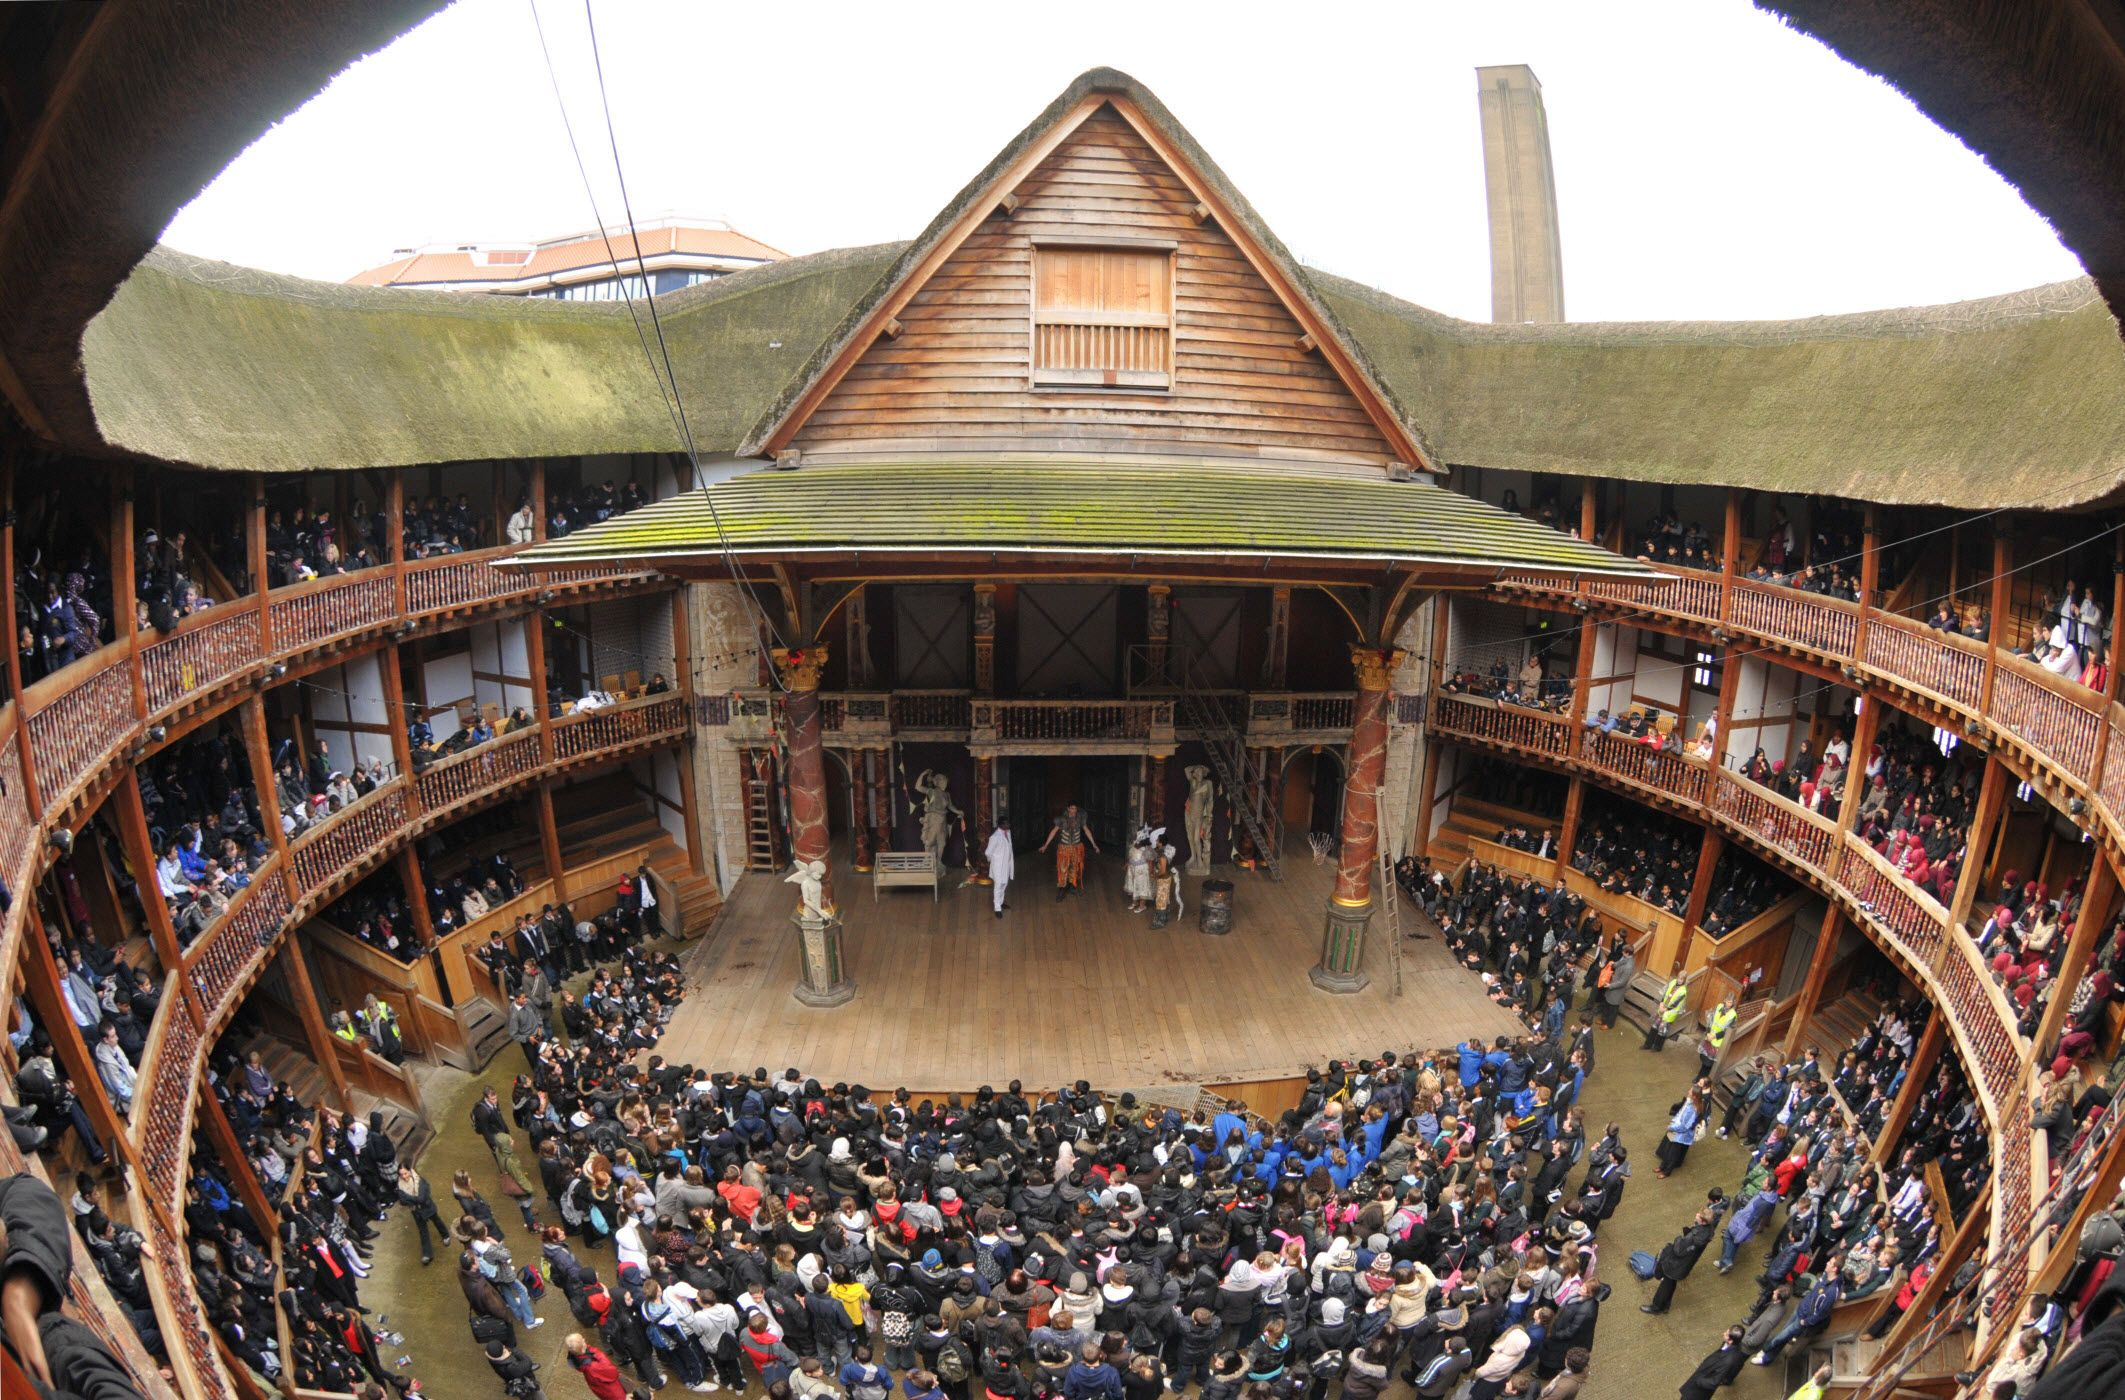 an analysis of the globe theatre in shakespeares greatest play Tradition says that this greatest of english  claims that this latter play was first exhibited at the globe theater in  analysis of the tempest shakespeare's.